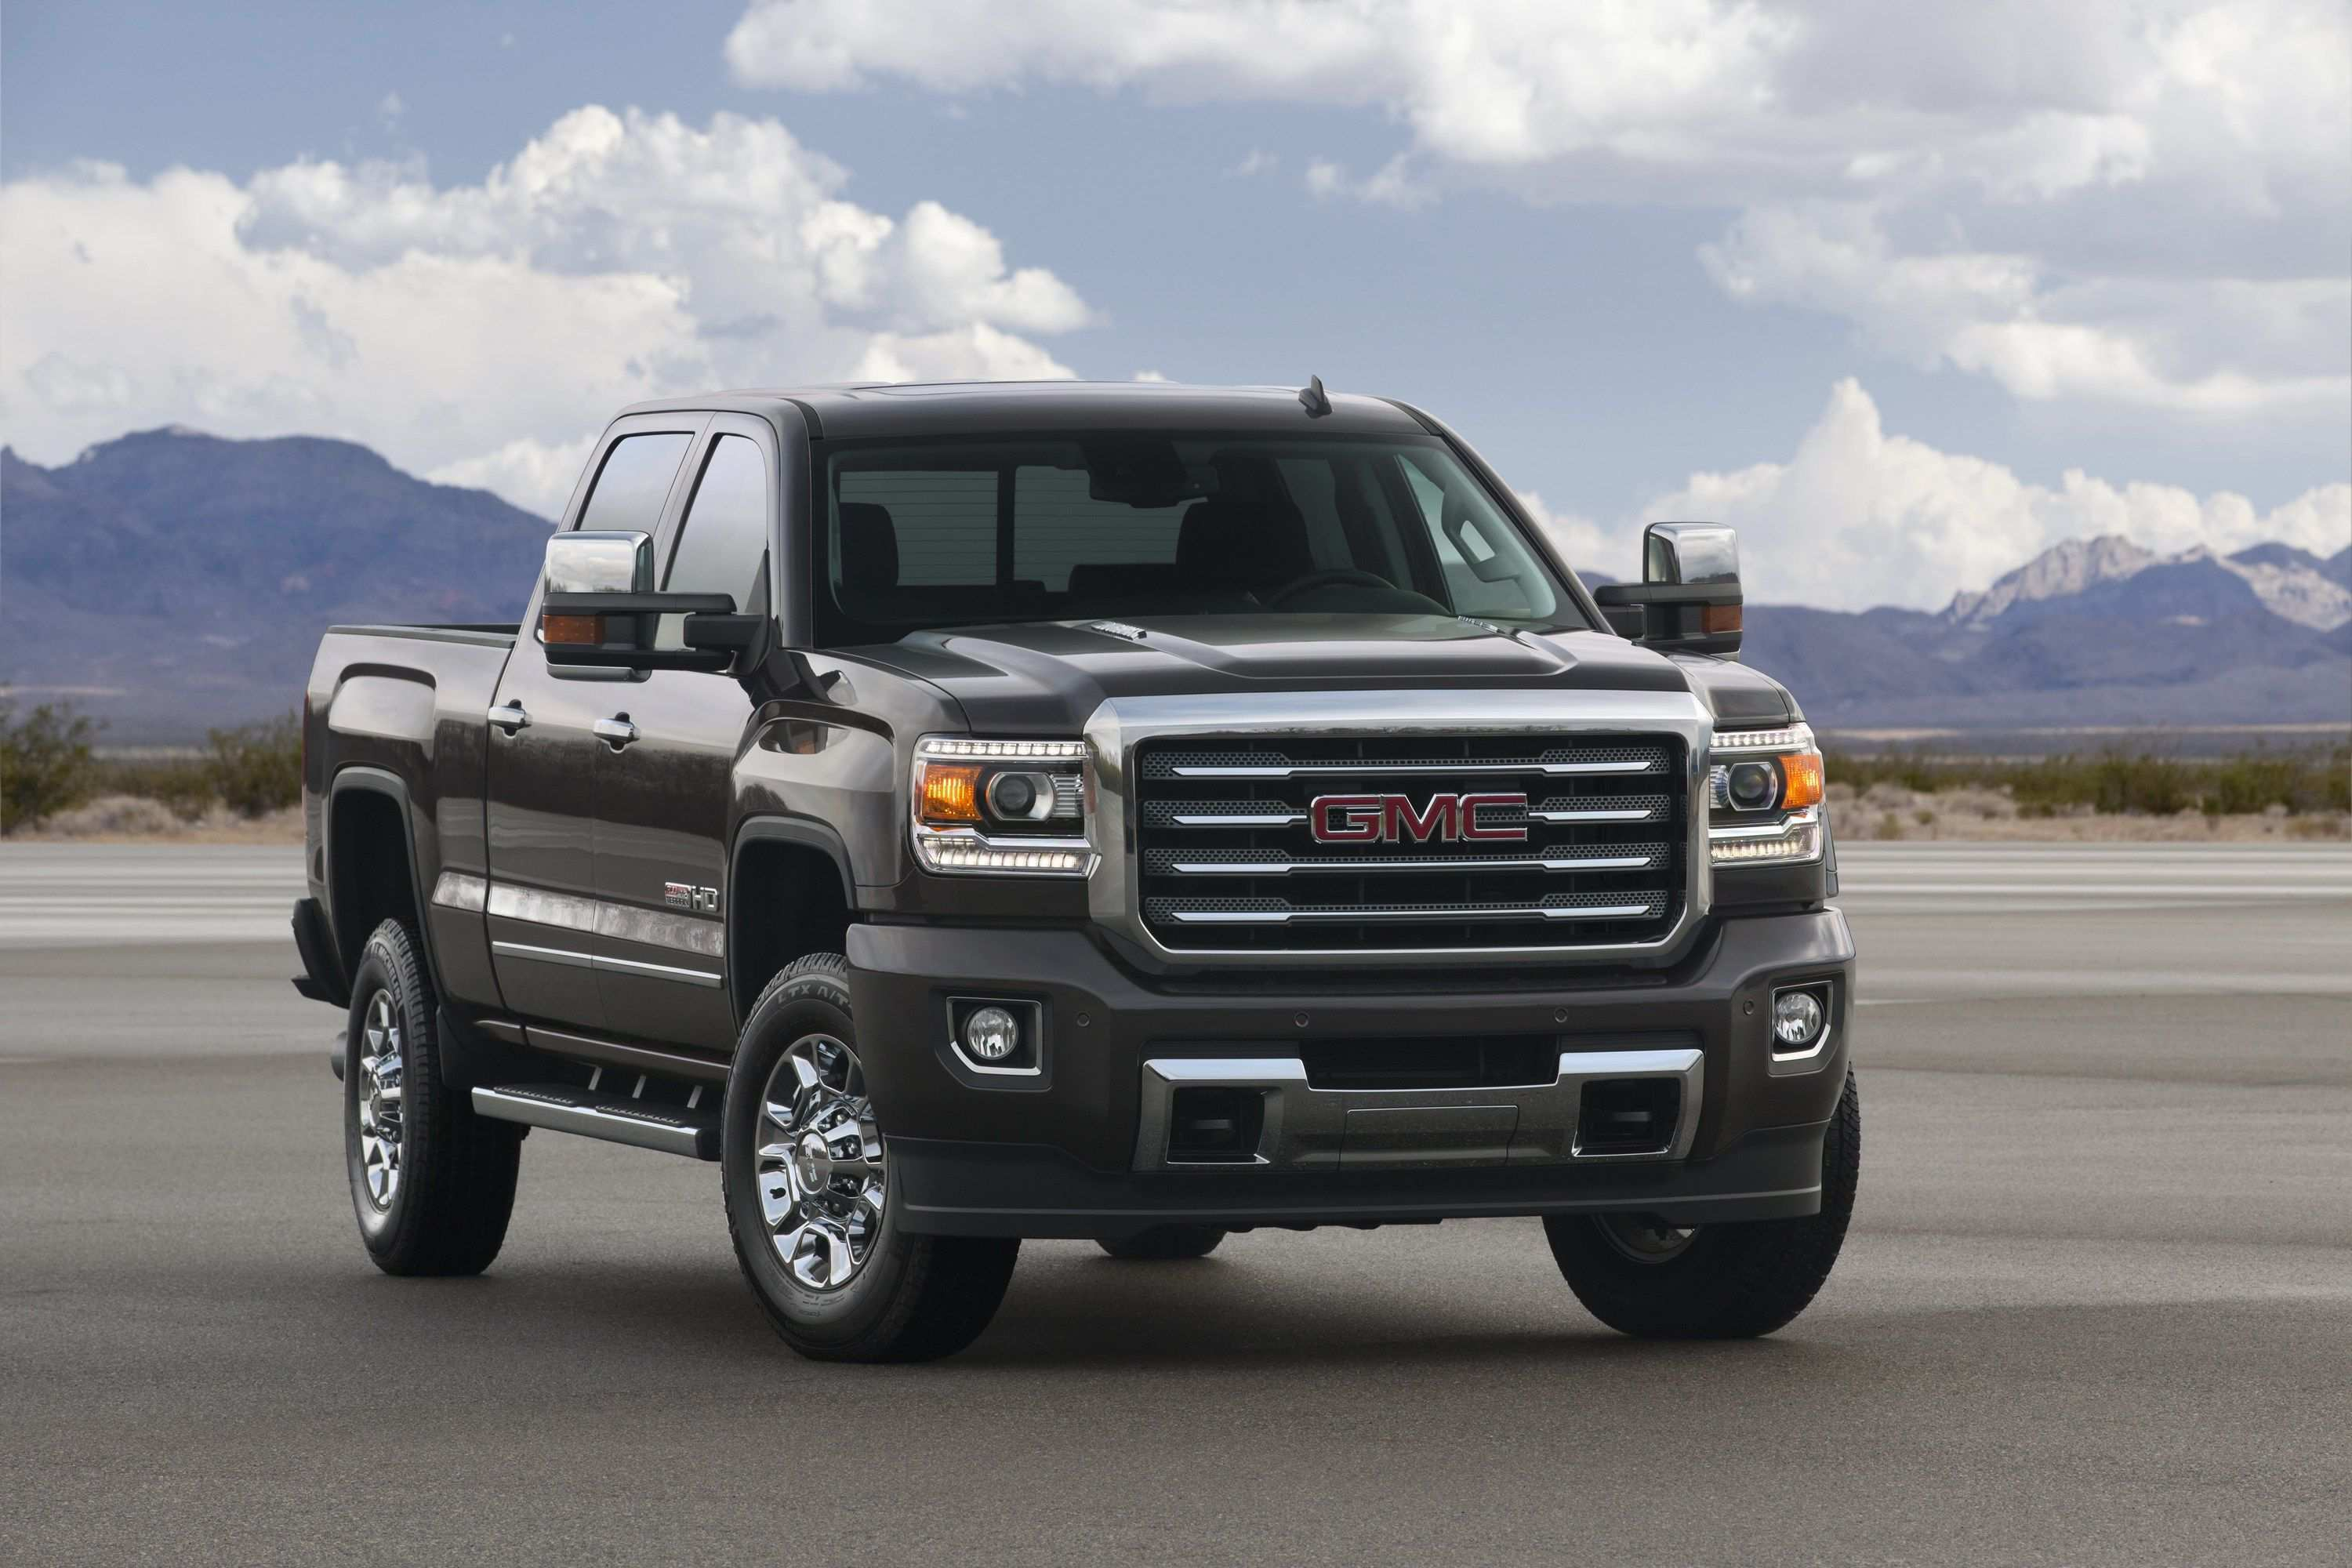 84 A 2020 GMC Denali 3500Hd Exterior And Interior